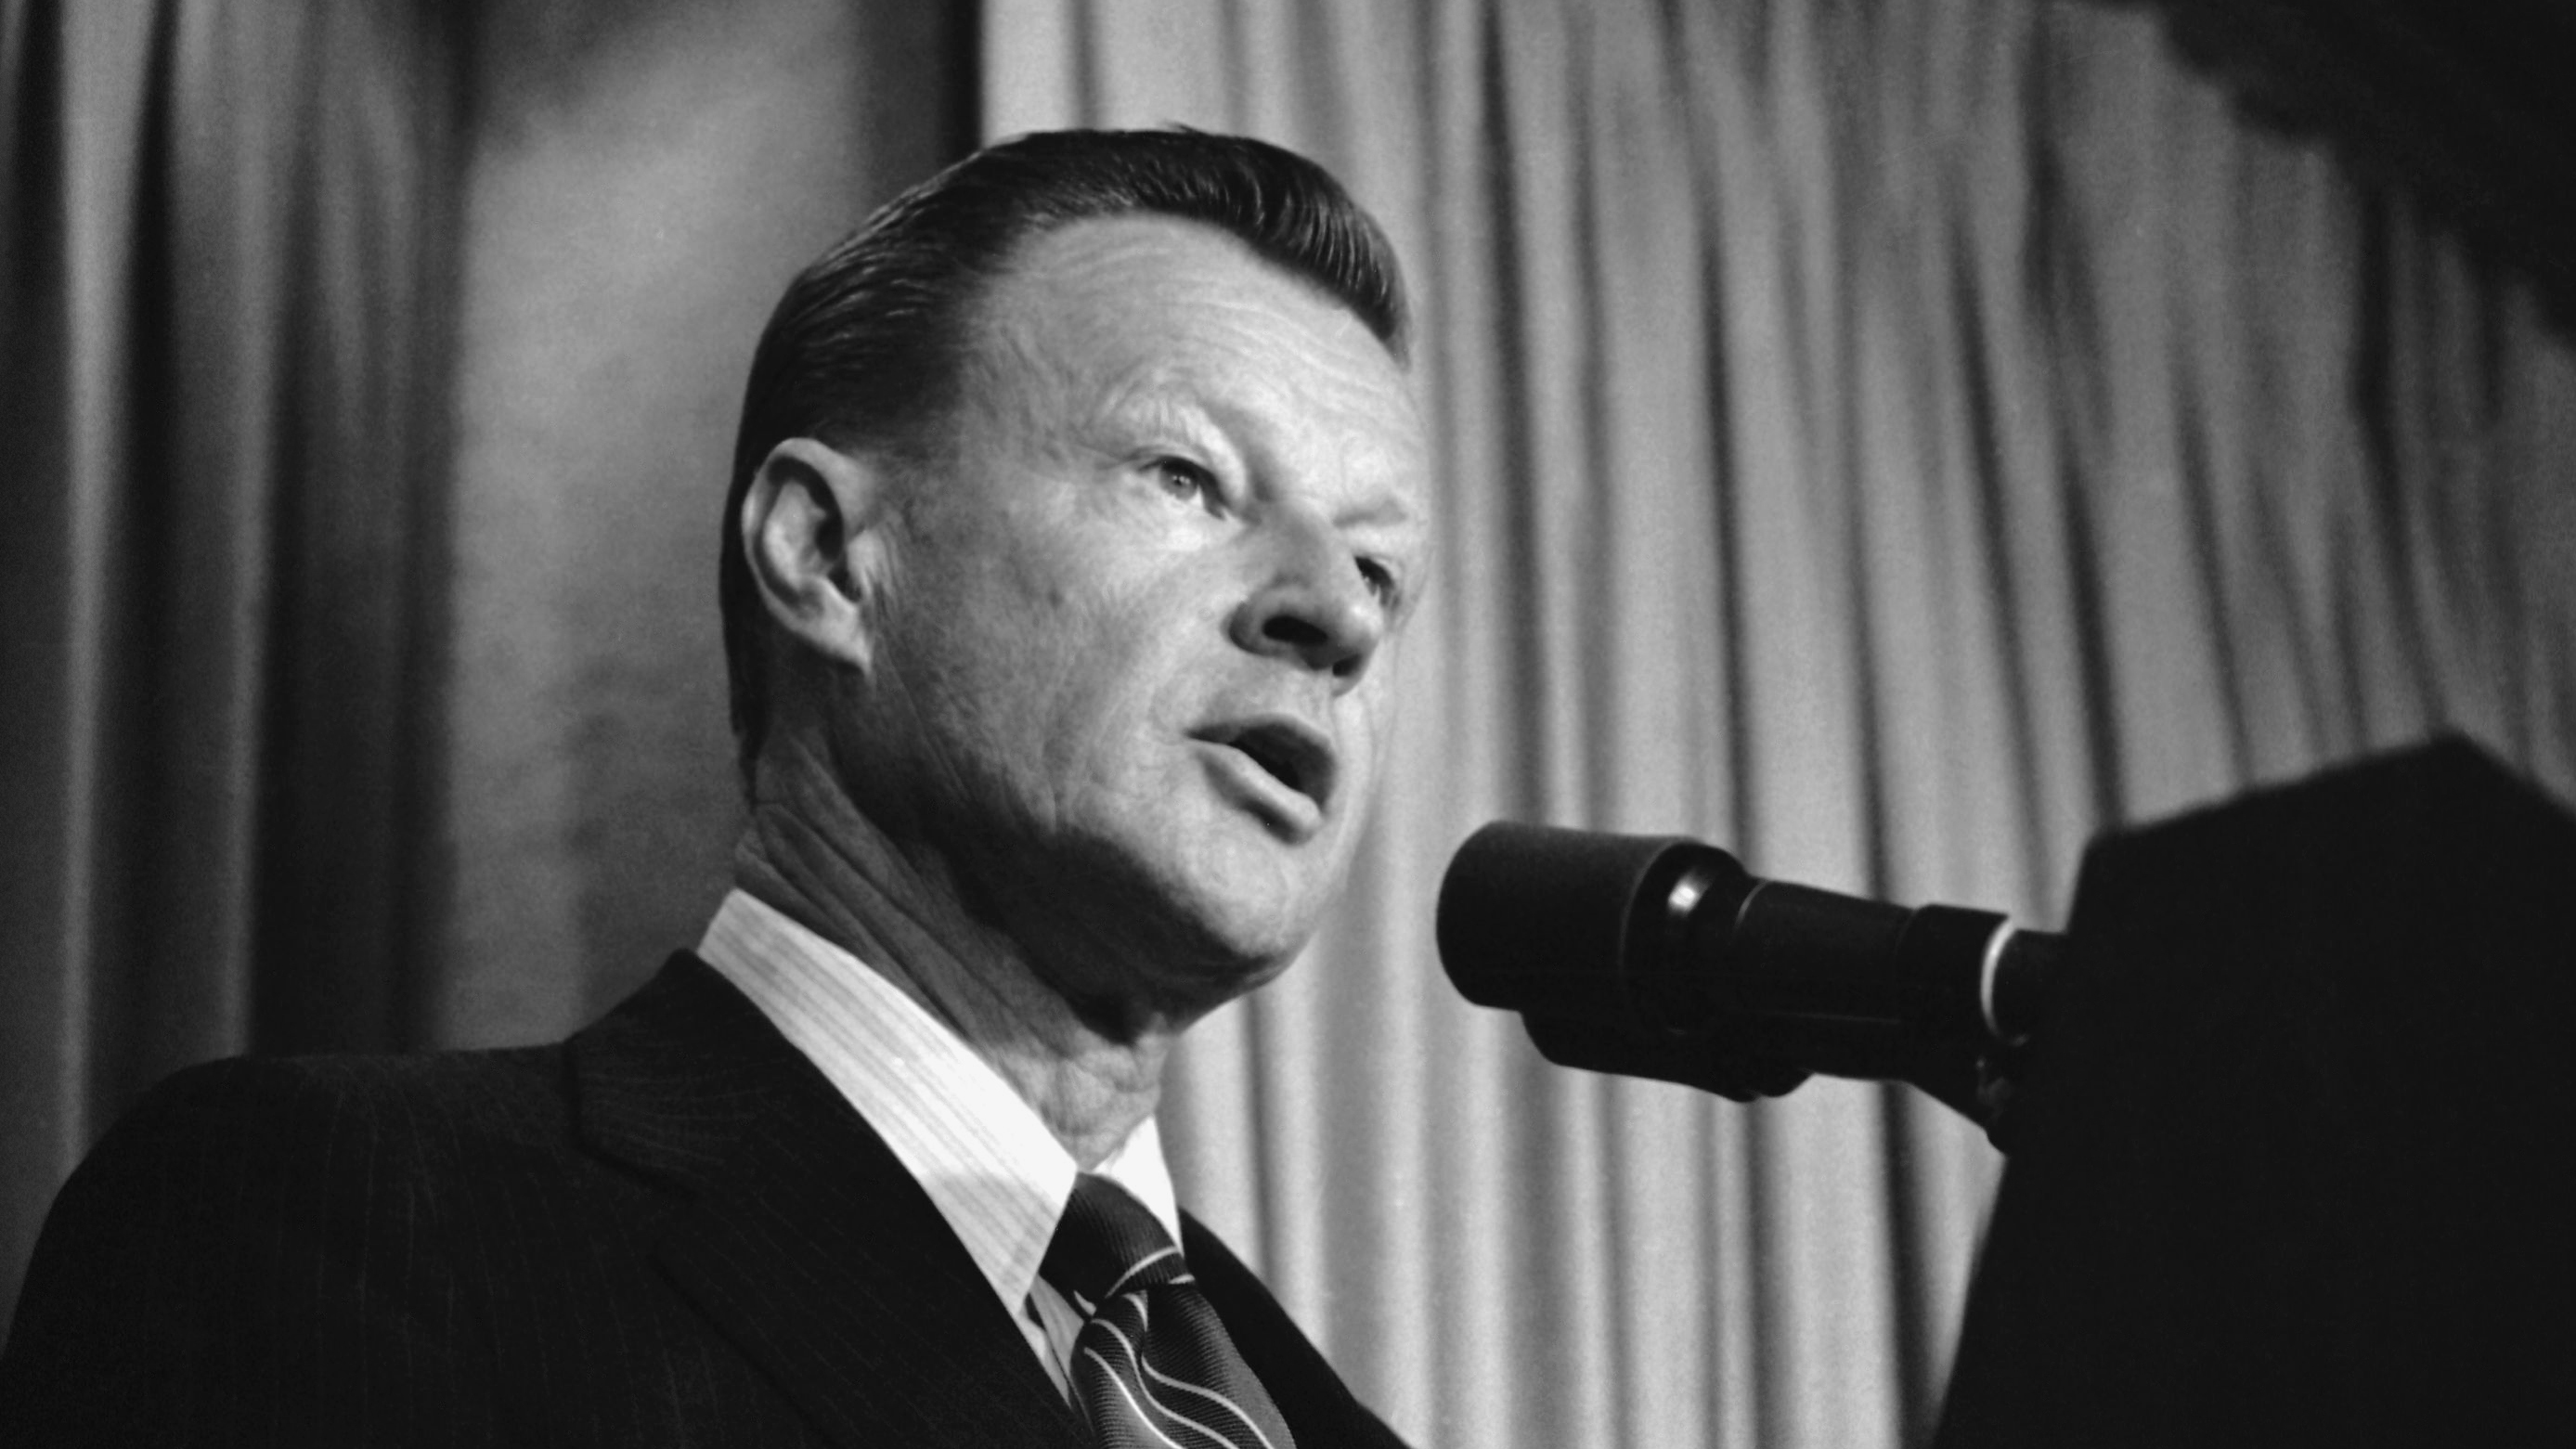 Zbigniew Brzezinski, President Carter's National Security Adviser, Dead at 89